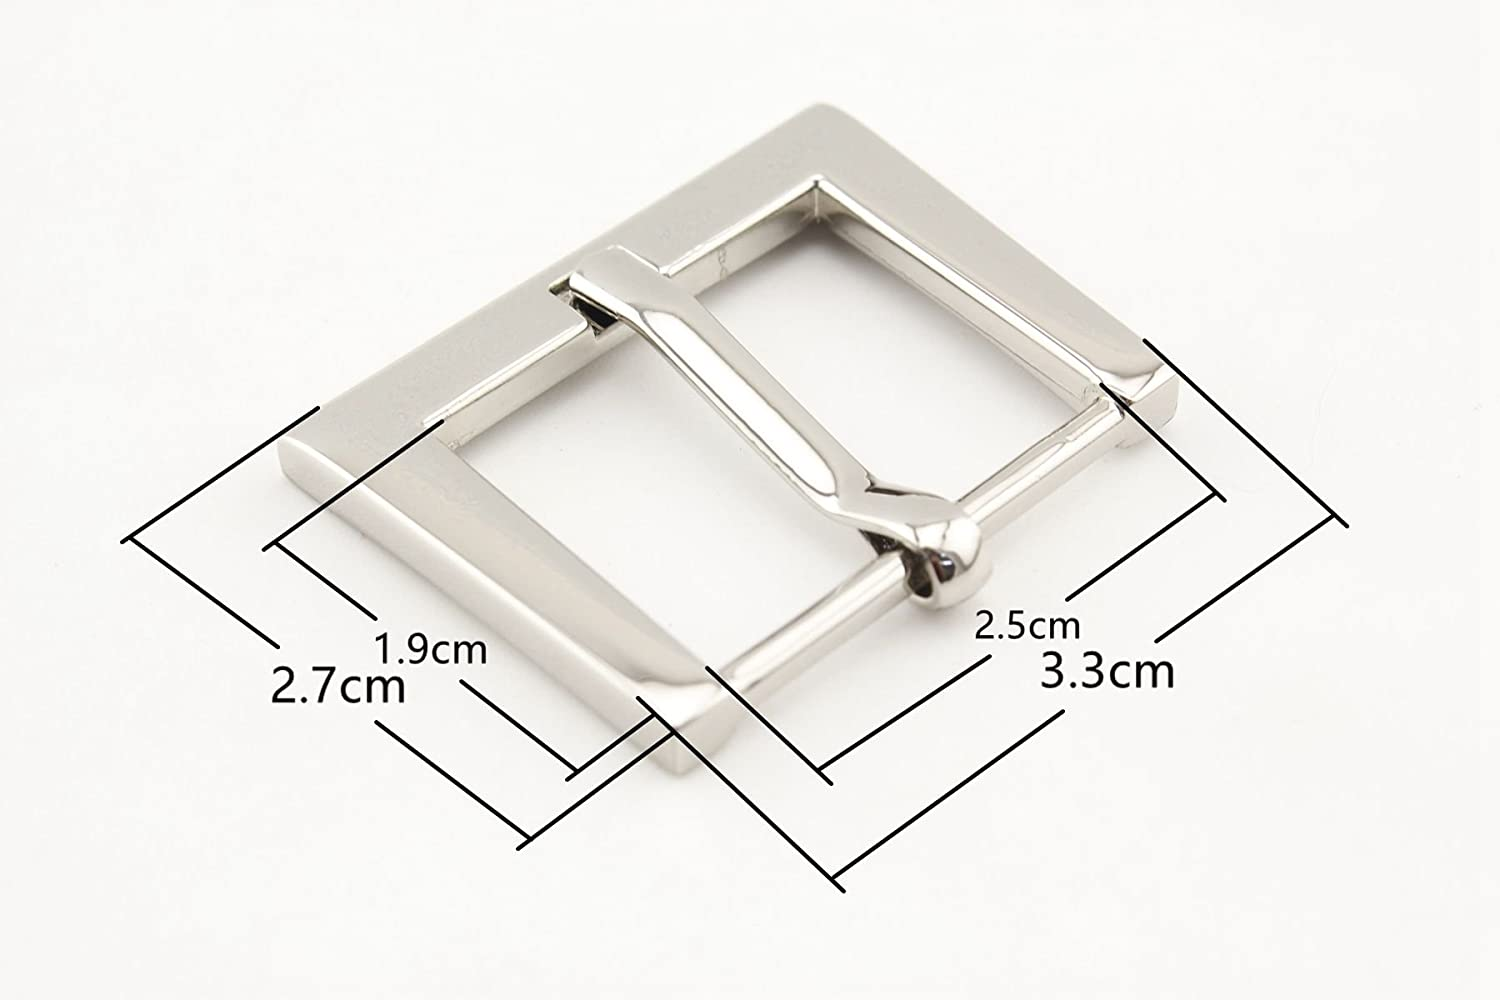 Nickel, 1 inch/25mm Zinc Alloy Belt Buckle for Belts and Leather Crafts, Heavy Duty Clasp for Sewing, Art, Bags, Clothing Replacement, 6 Pieces per lot U153